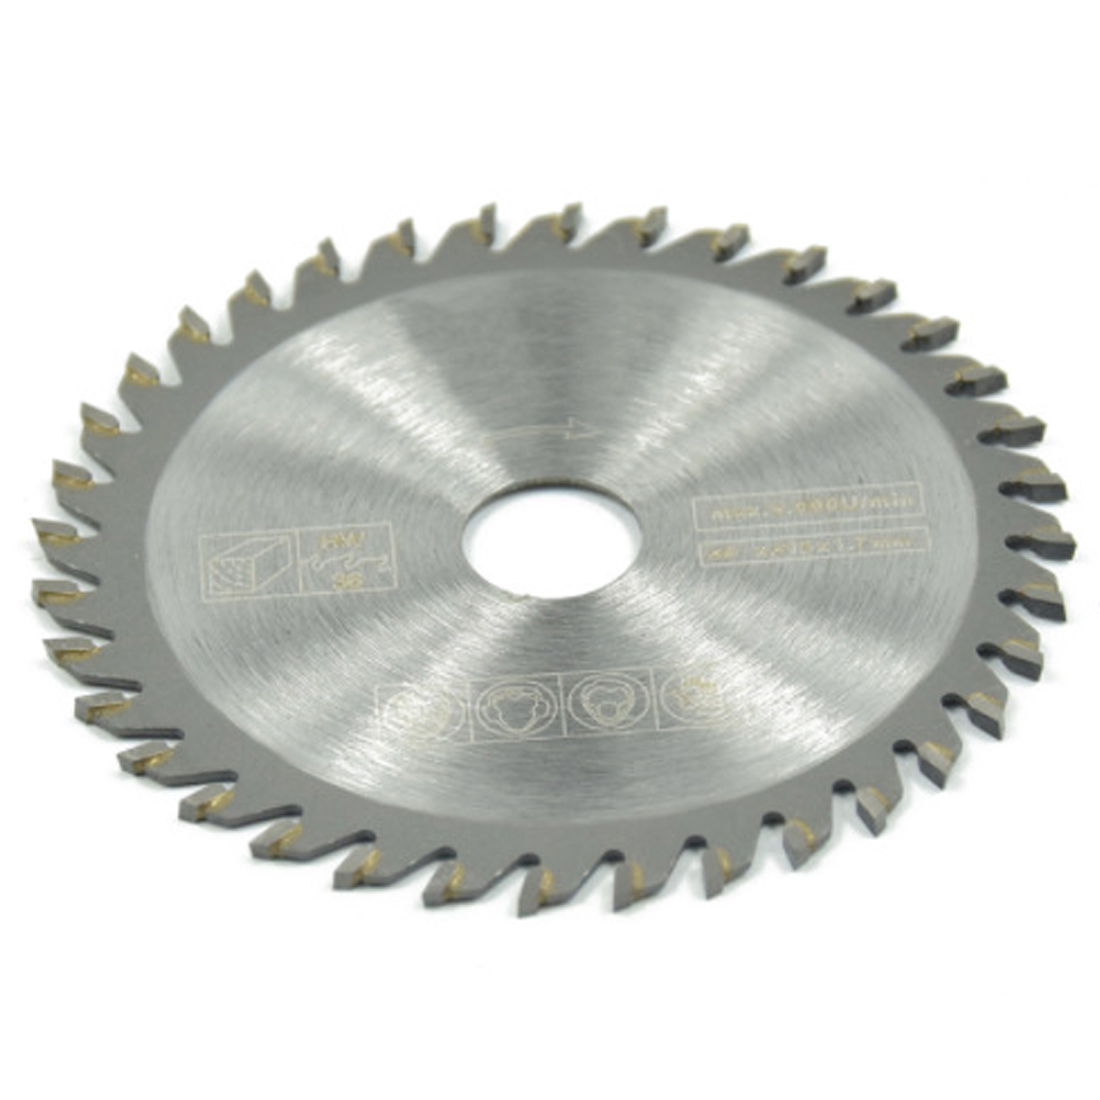 36T TCT Tungsten Carbide Mini Circular Saw Blade For Wood Cutting Power Tool Accessories Mini Saw